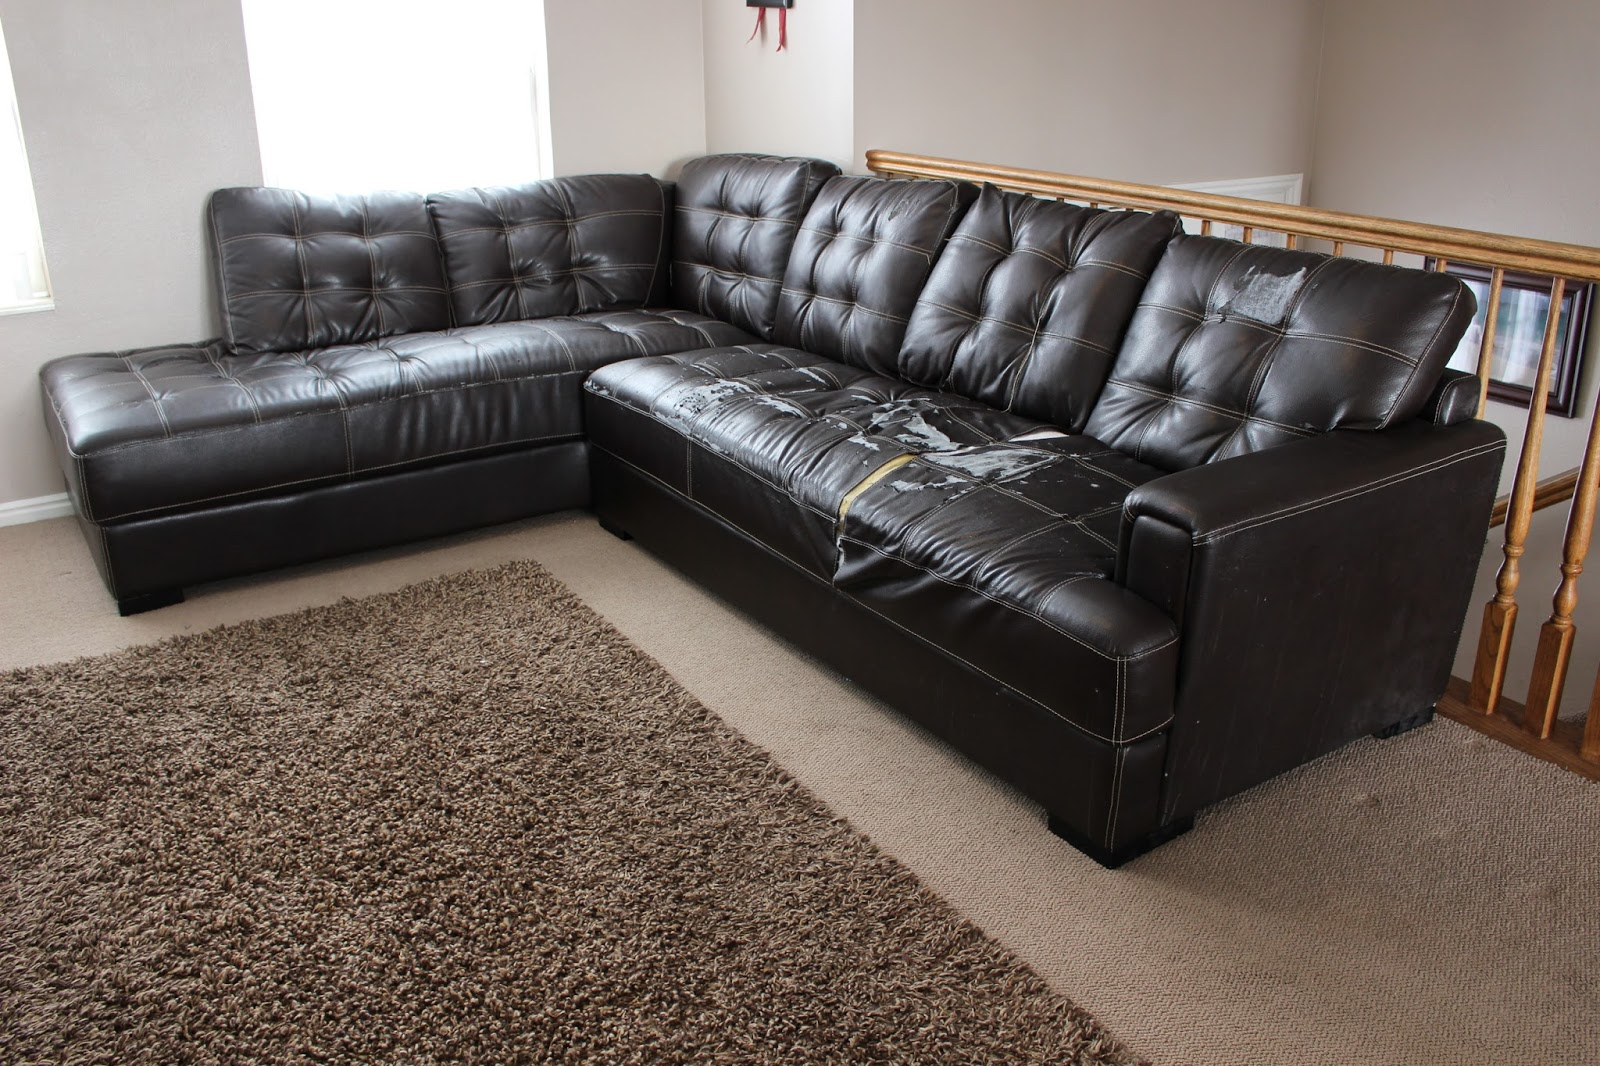 How To Reupholster A Sectional Sofa Reupholstered Sofa ...